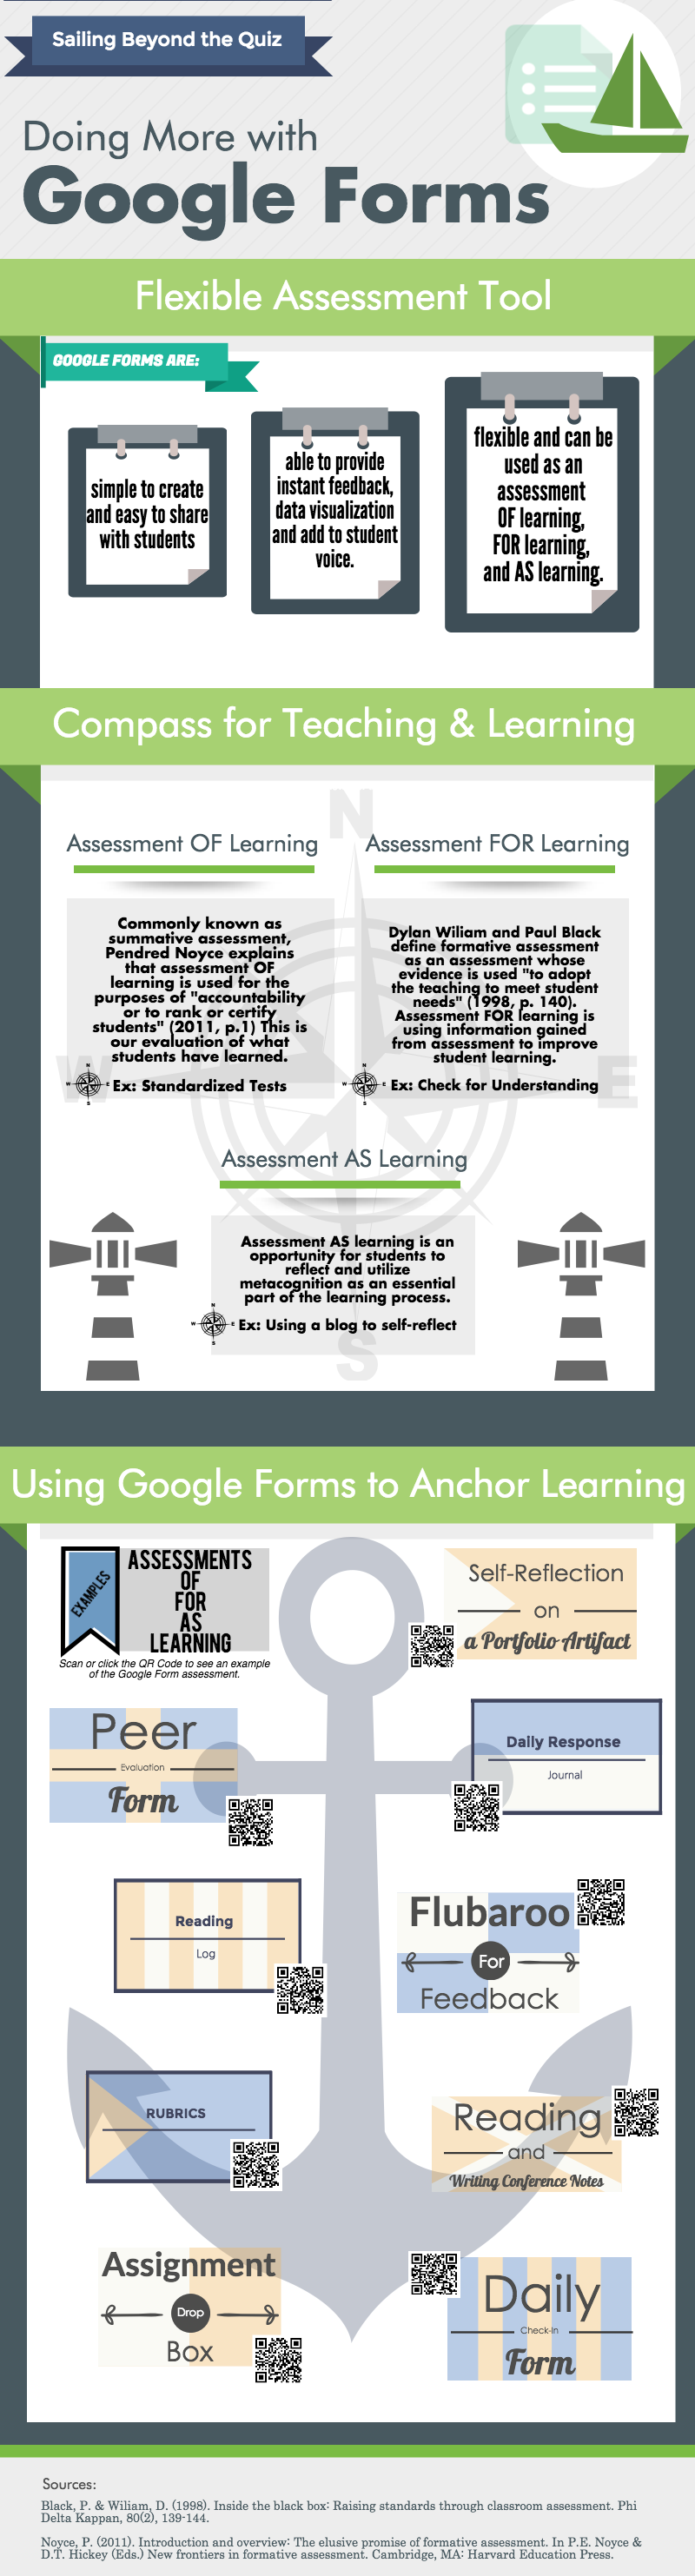 Doing More with Google Forms (2)